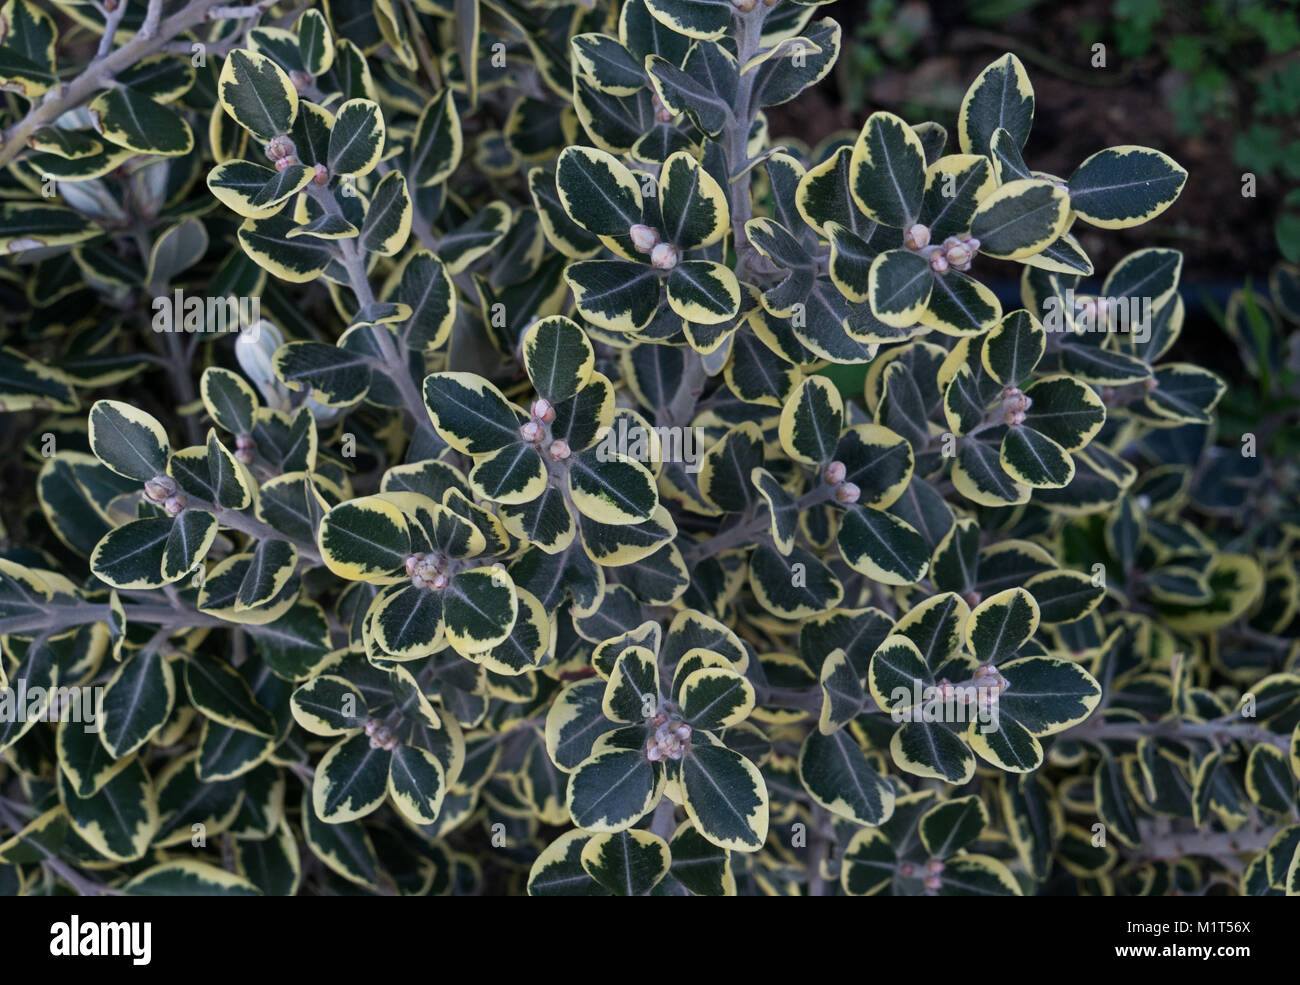 Young ficus with motley leaves and seeds - Stock Image